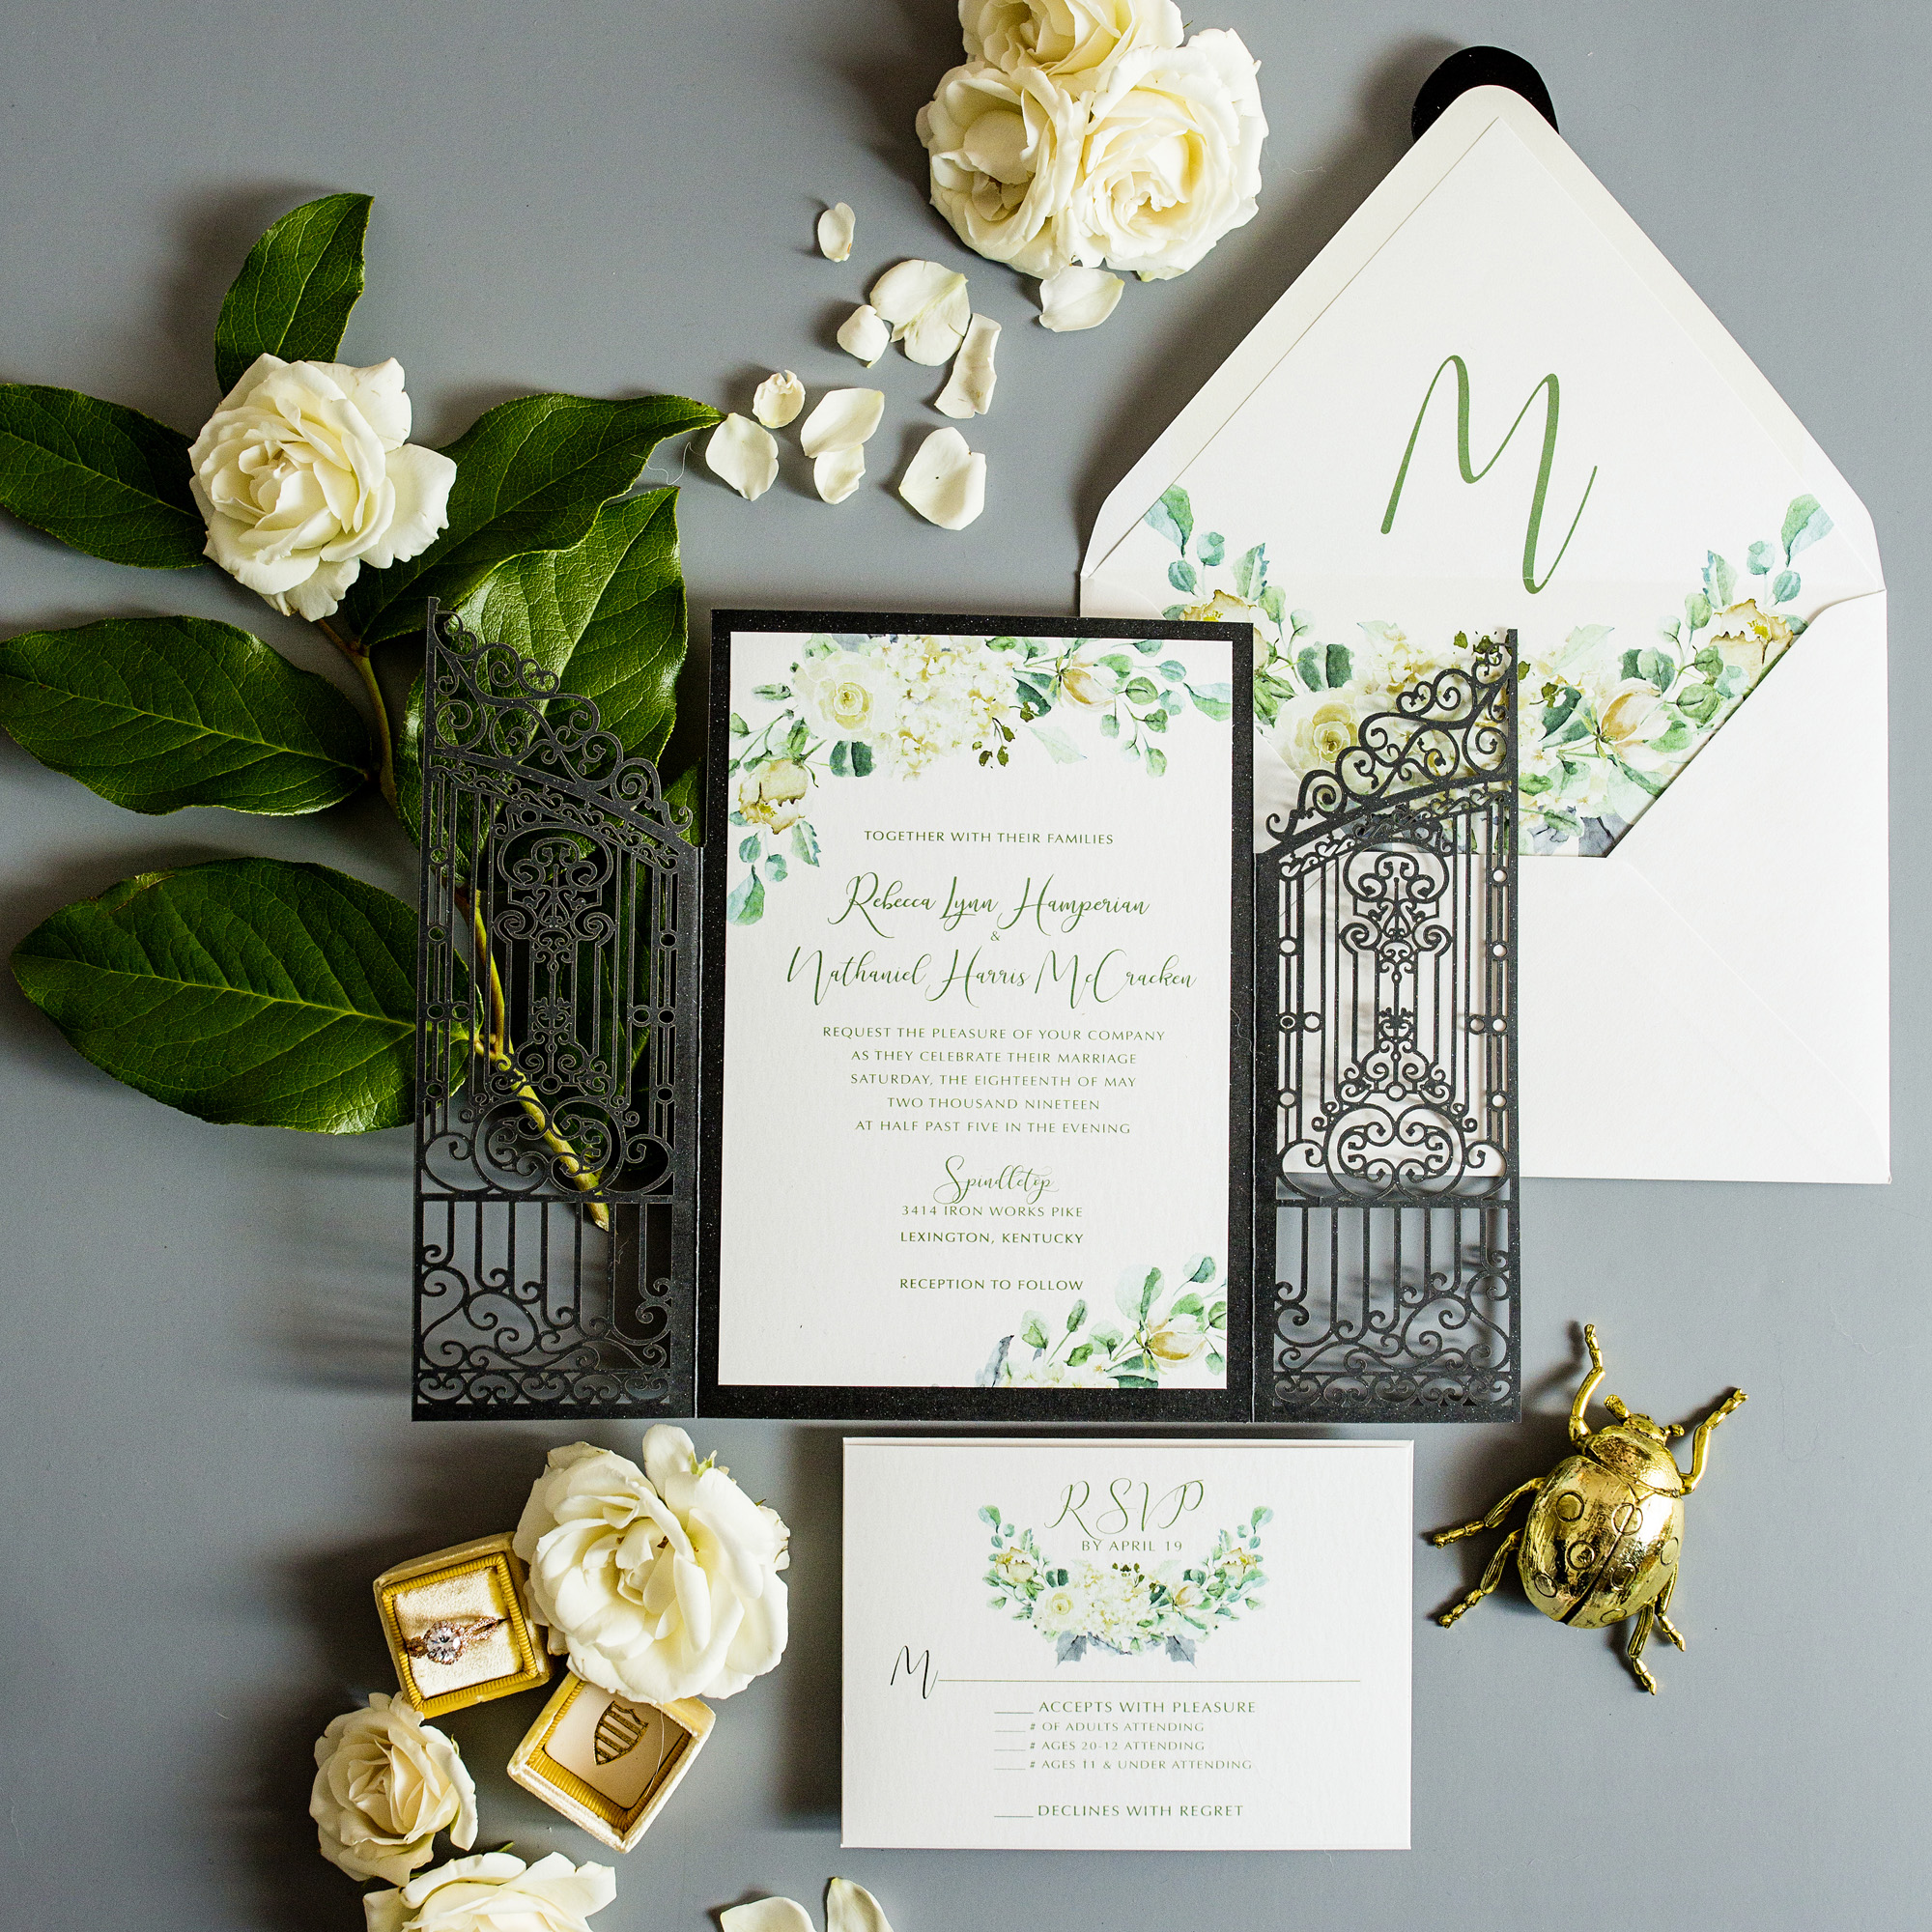 Seriously_Sabrina_Photography_Commercial_Simply_Done_Invites_2019_March_044